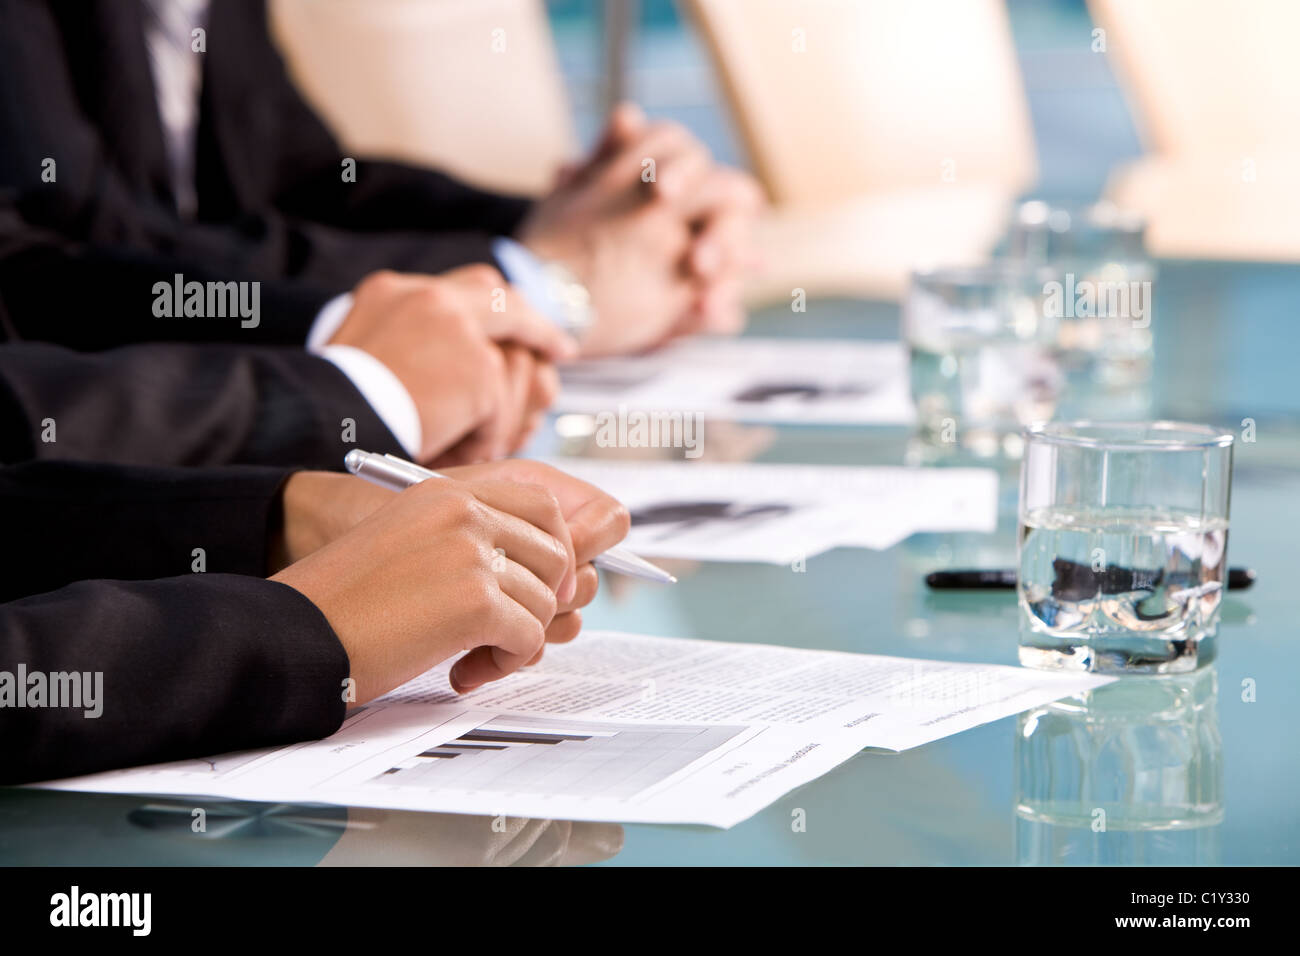 Row of human hands on workplaces with papers during conference - Stock Image